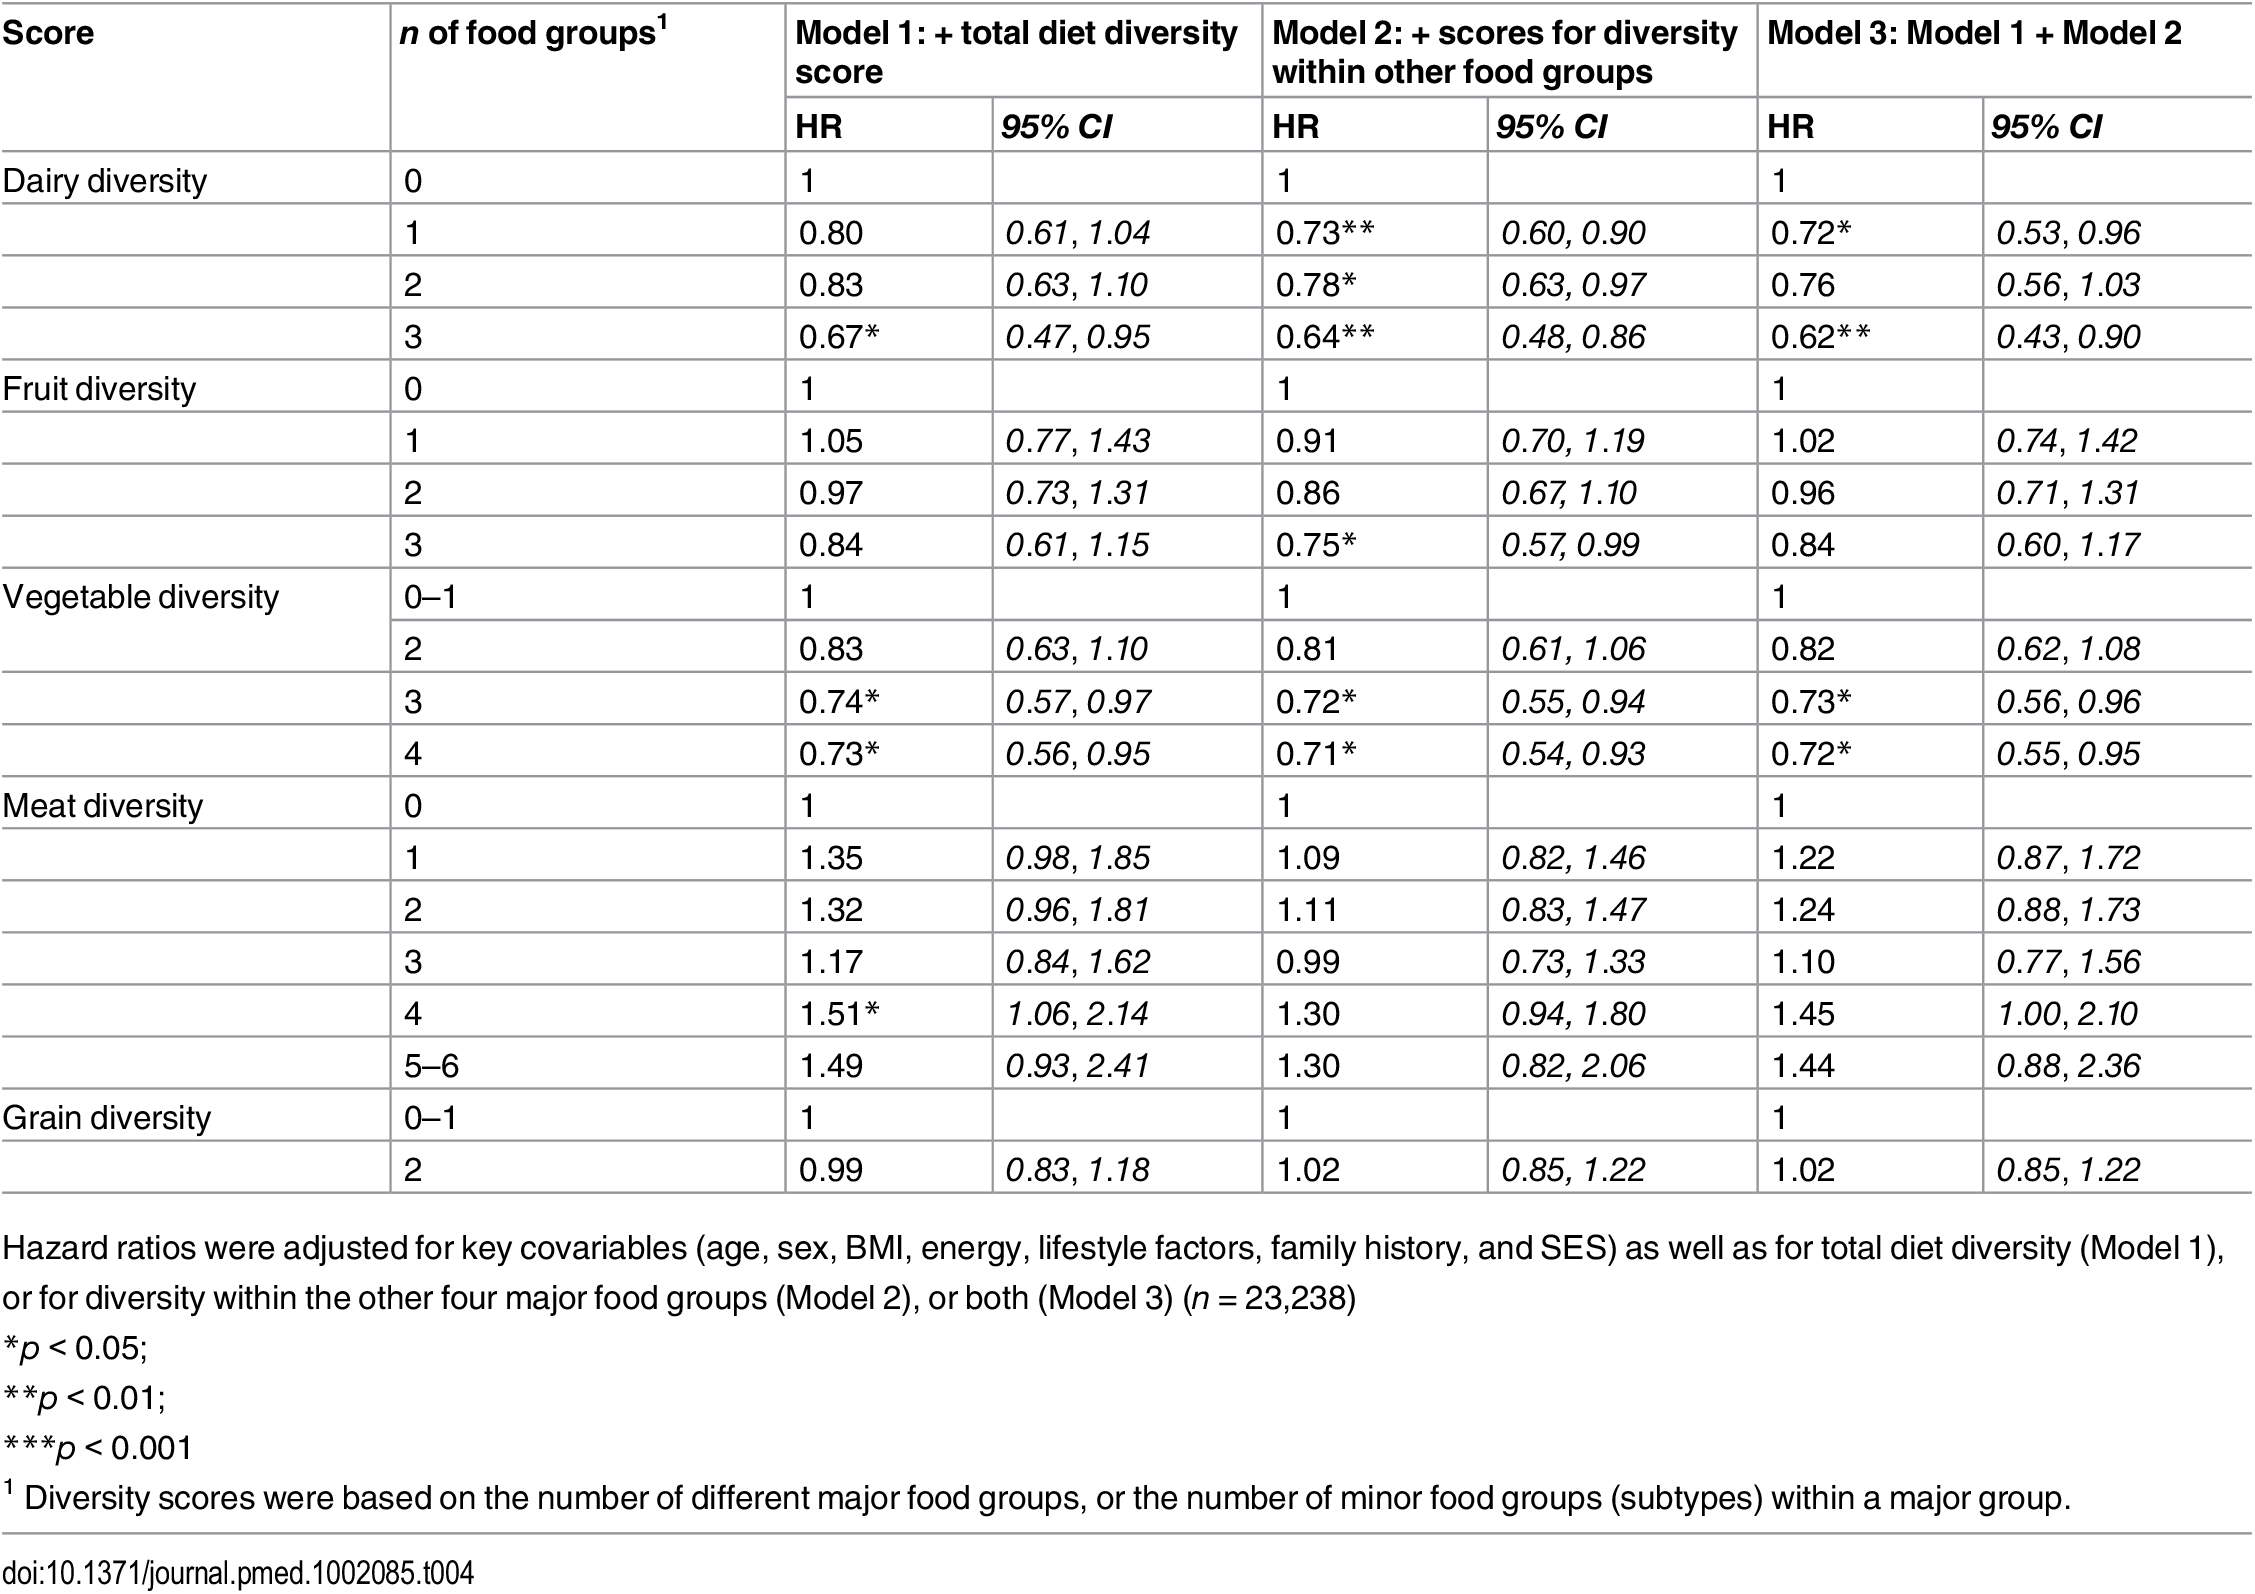 Adjusted hazard ratios (95% CI) of incident diabetes for diversity of dairy products, fruits, vegetables, grains, and meat products in the EPIC-Norfolk study, independent of total diet diversity and diversity within other food groups.